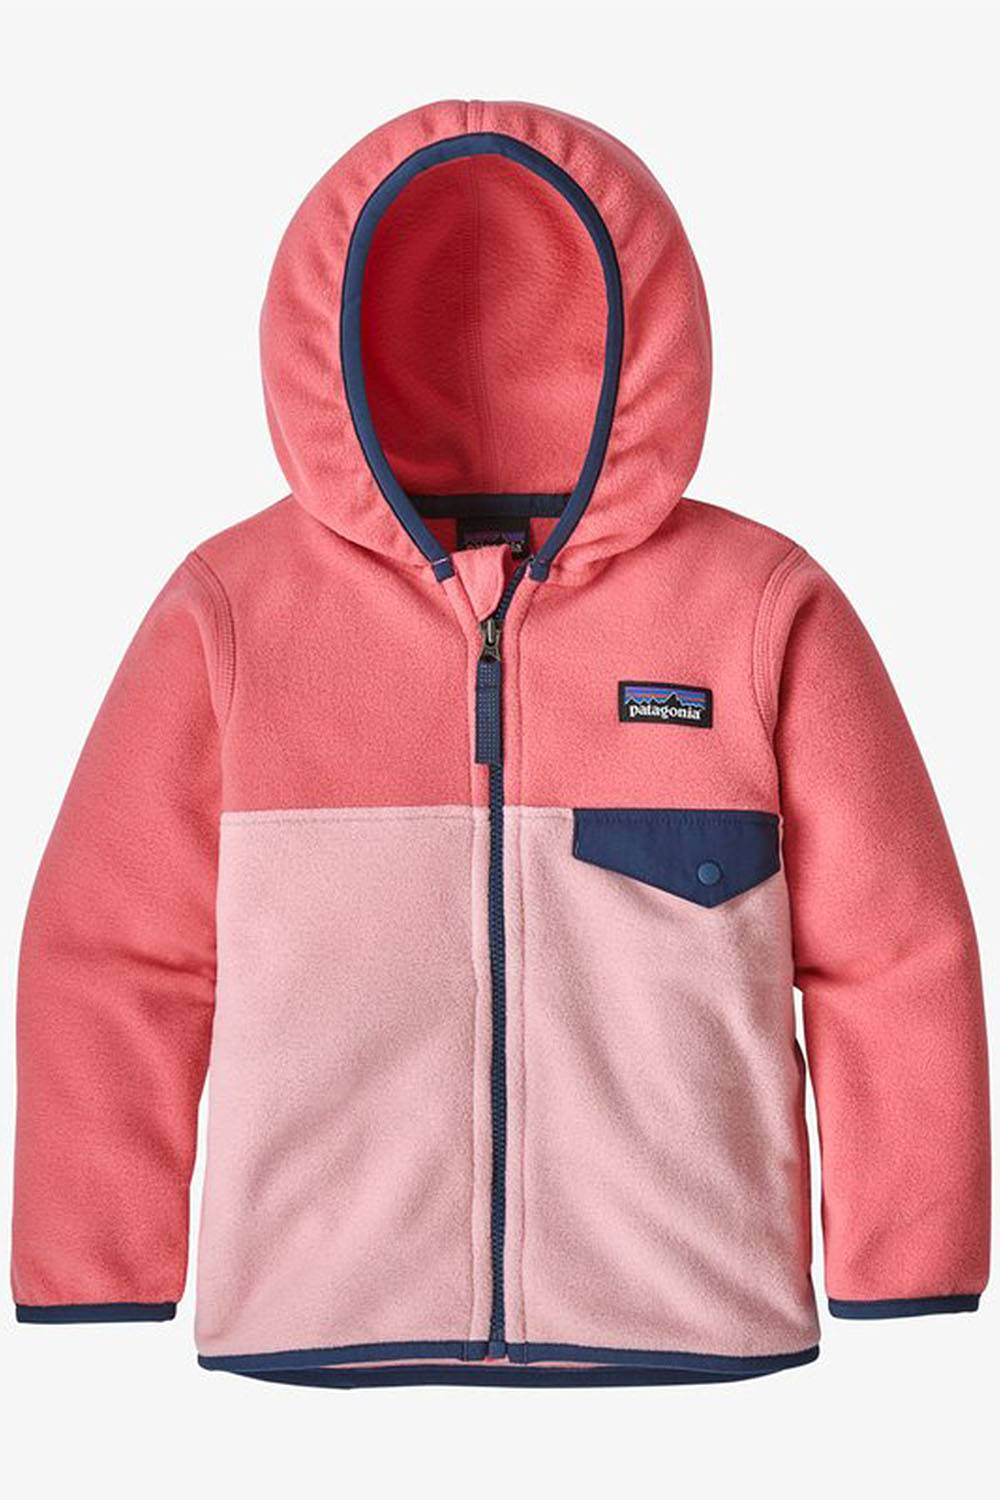 patagonia upcycled recycled baby clothing